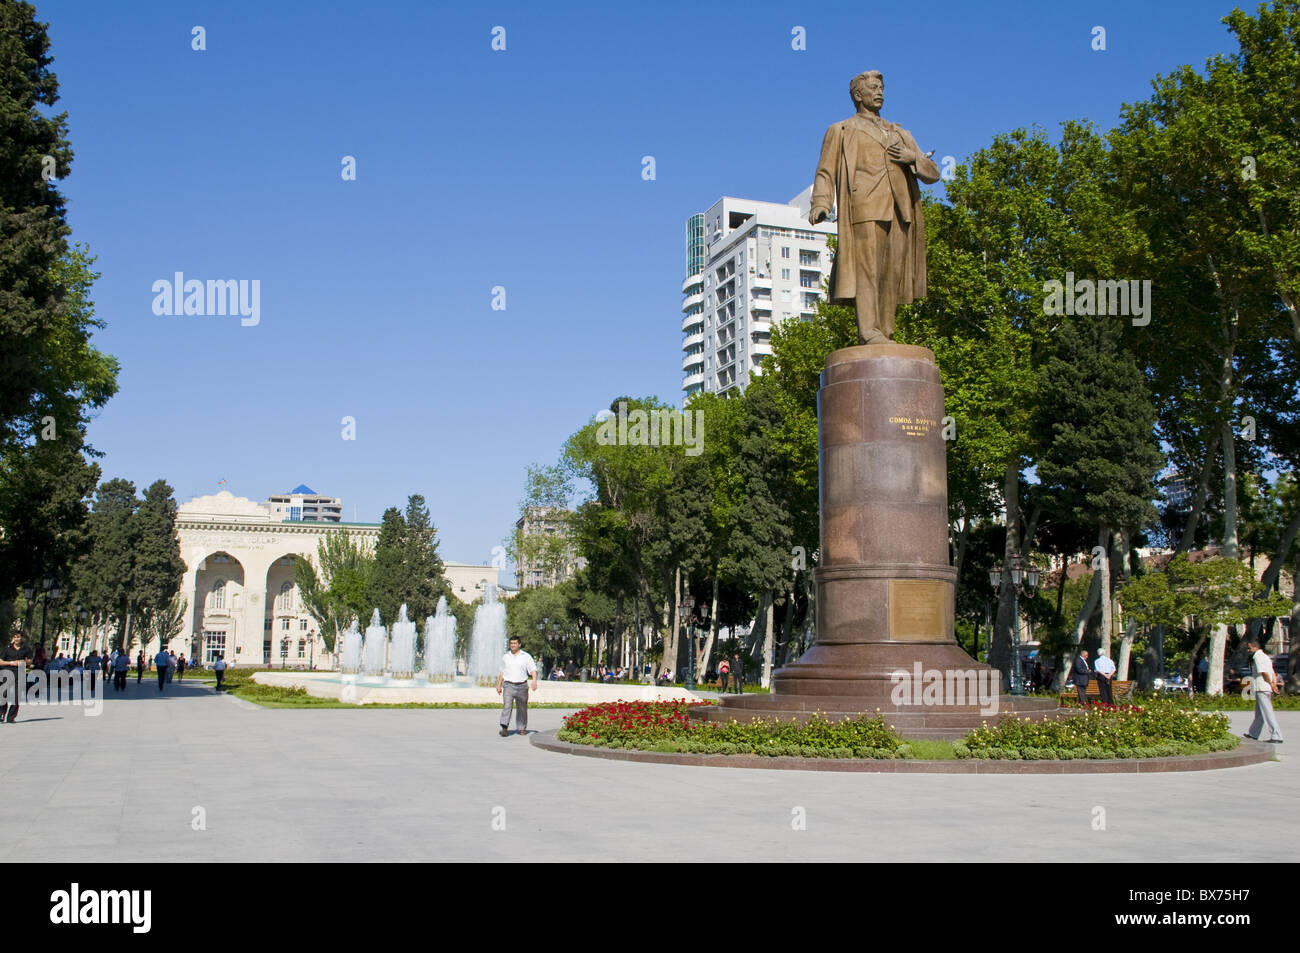 Statue and fountain in the center of Baku, Azerbaijan, Central Asia, Asia - Stock Image